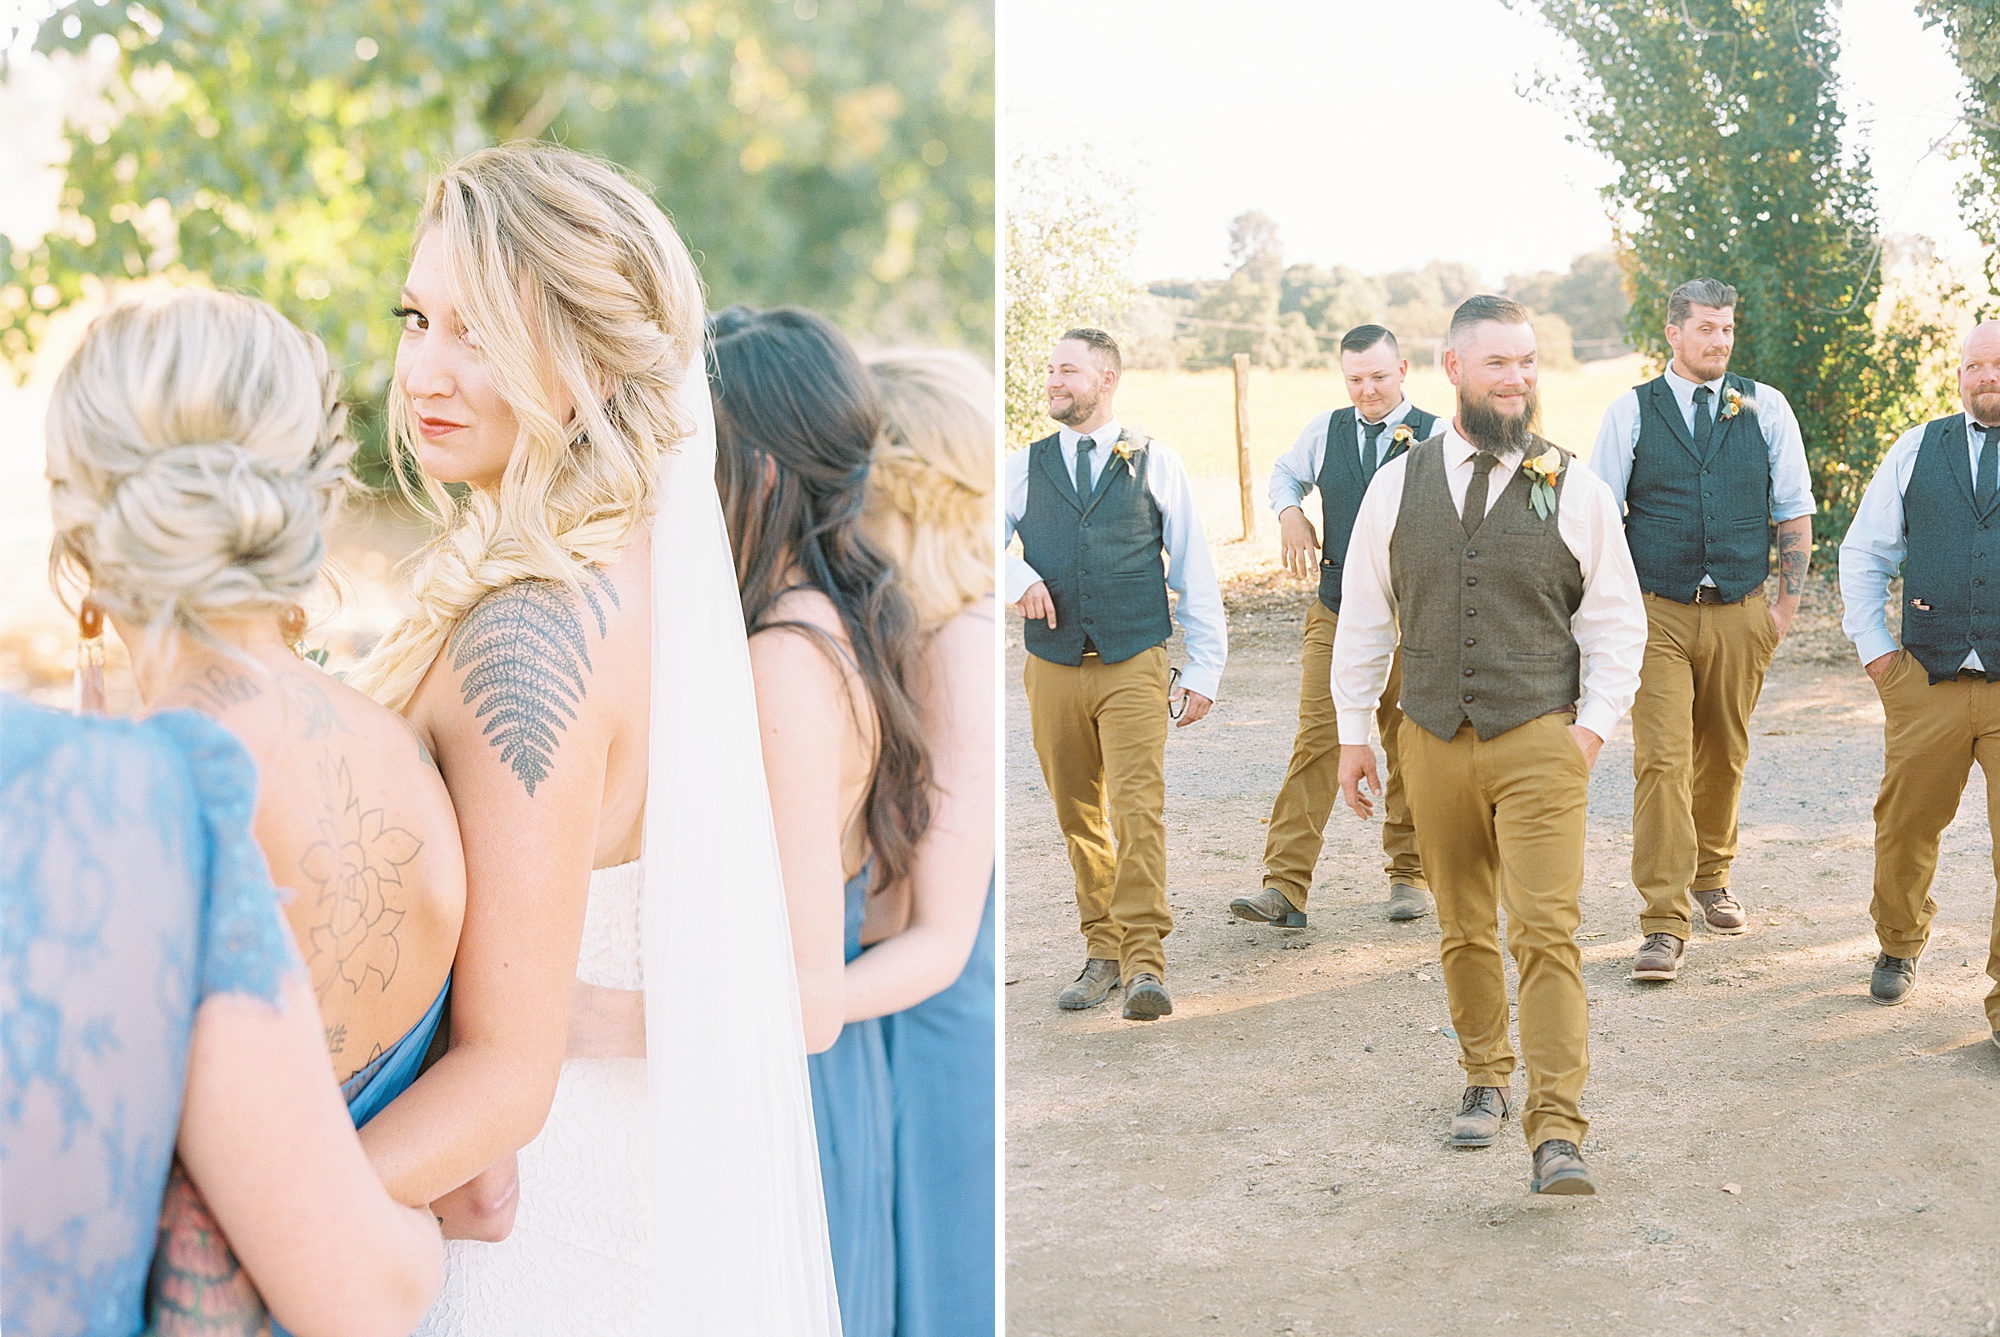 Sonora Wedding Photographer - Tiffany and Jesse - Ashley Baumgartner - Private Estate Summer Wedding_0095.jpg